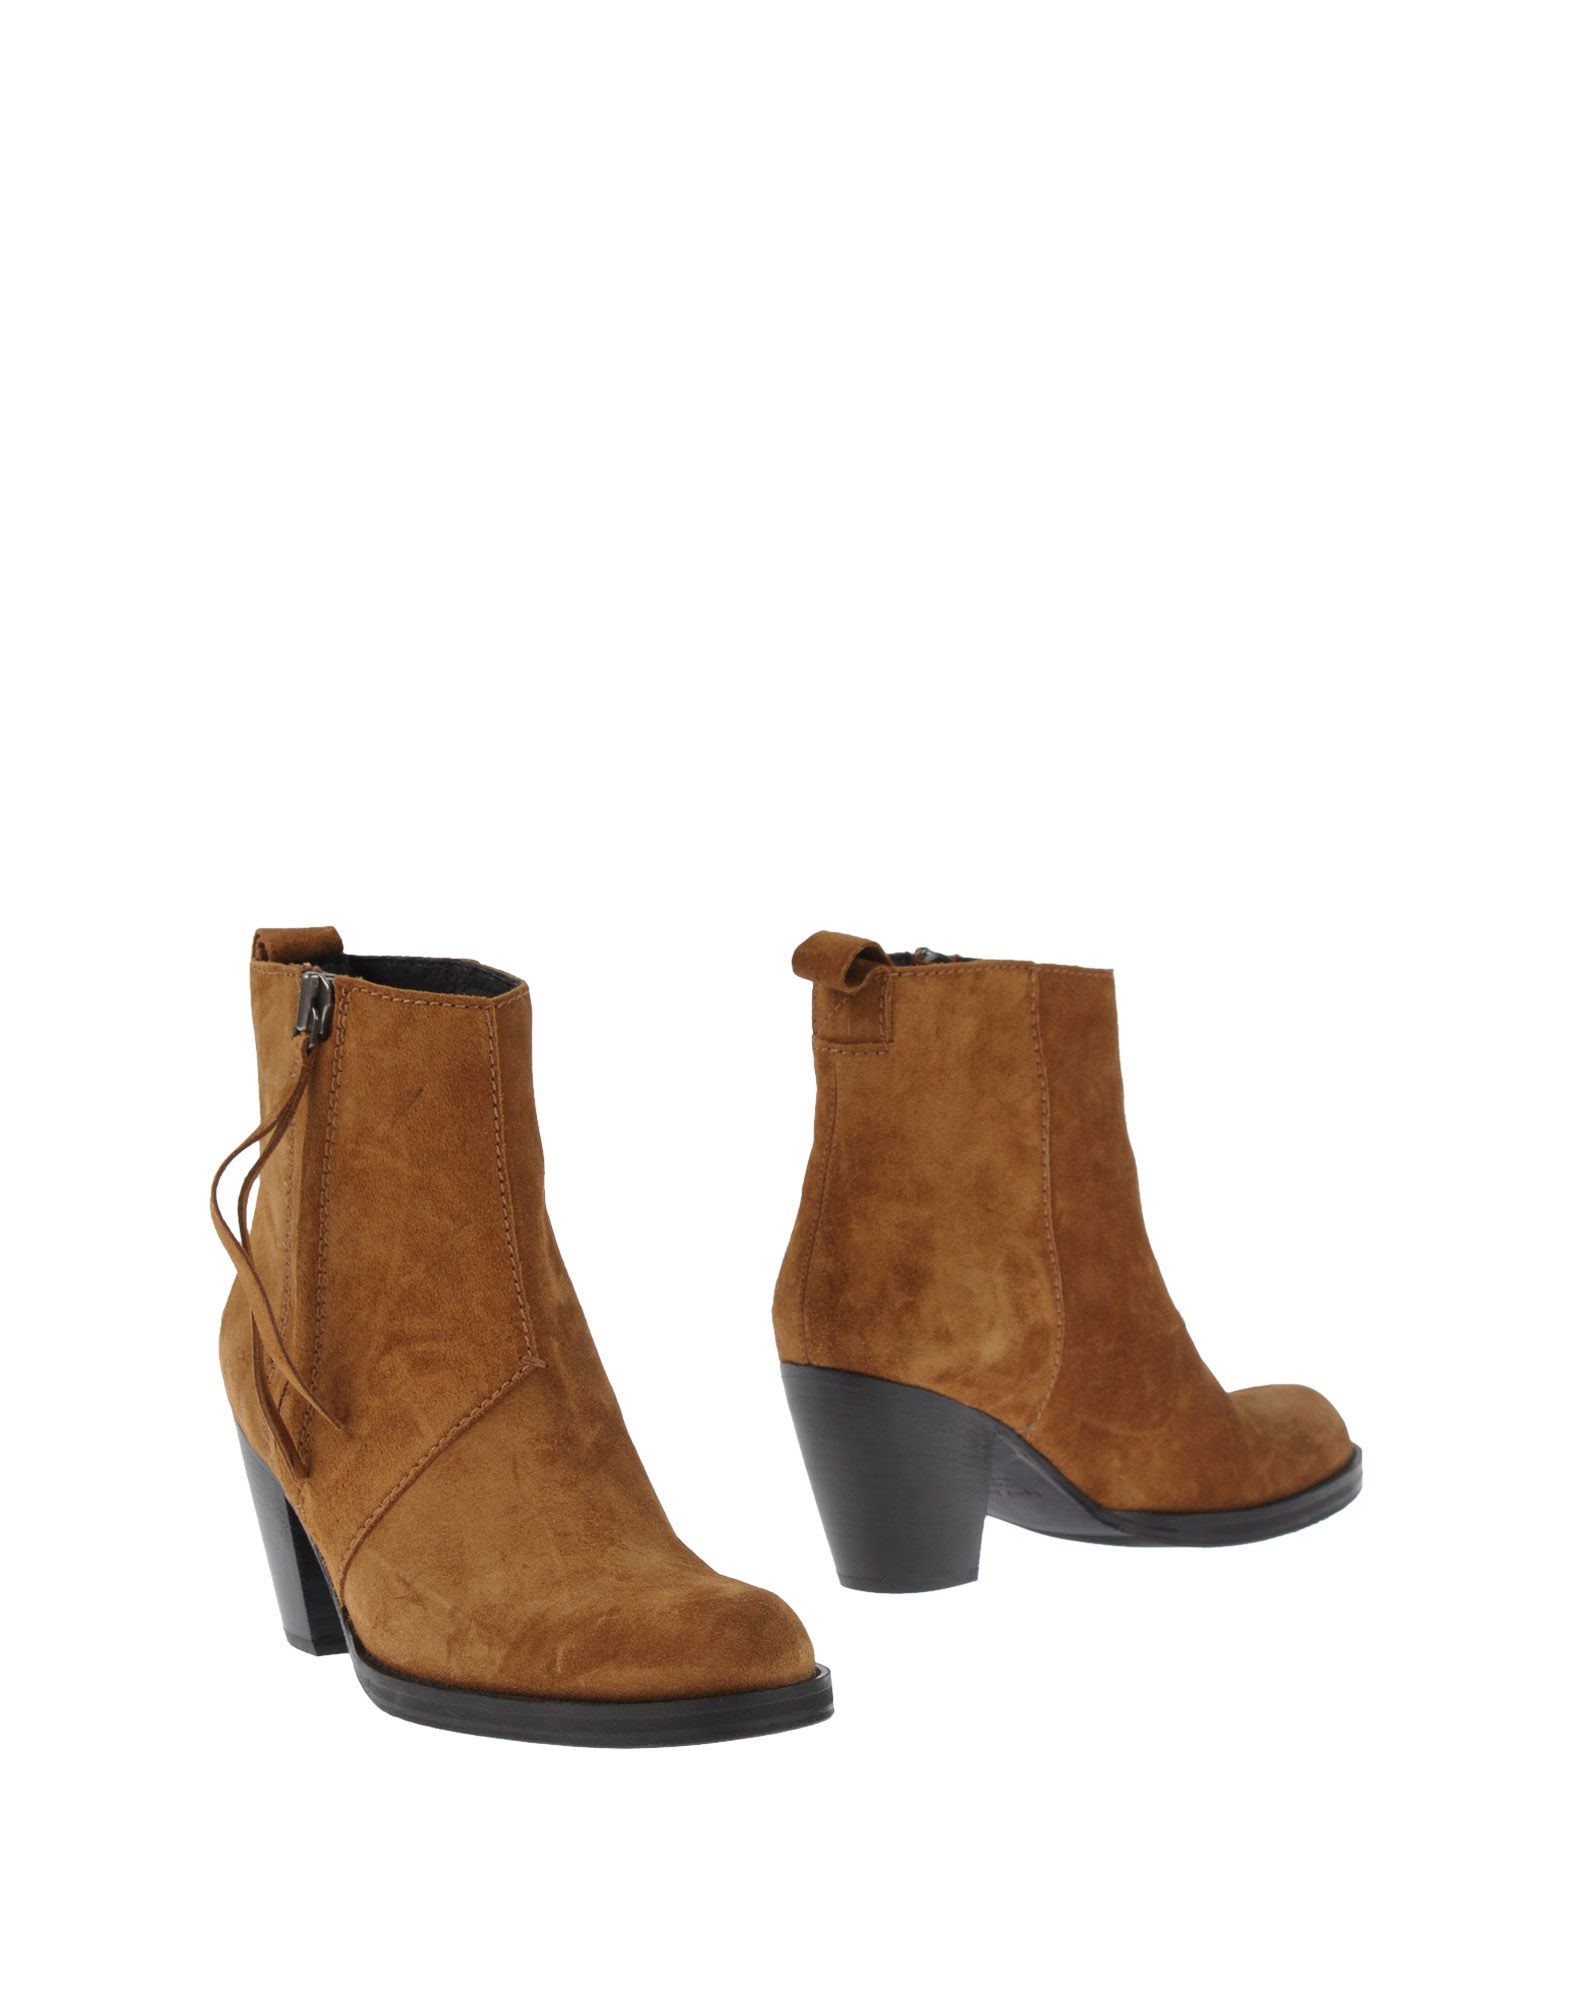 acne studios ankle boots in brown lyst